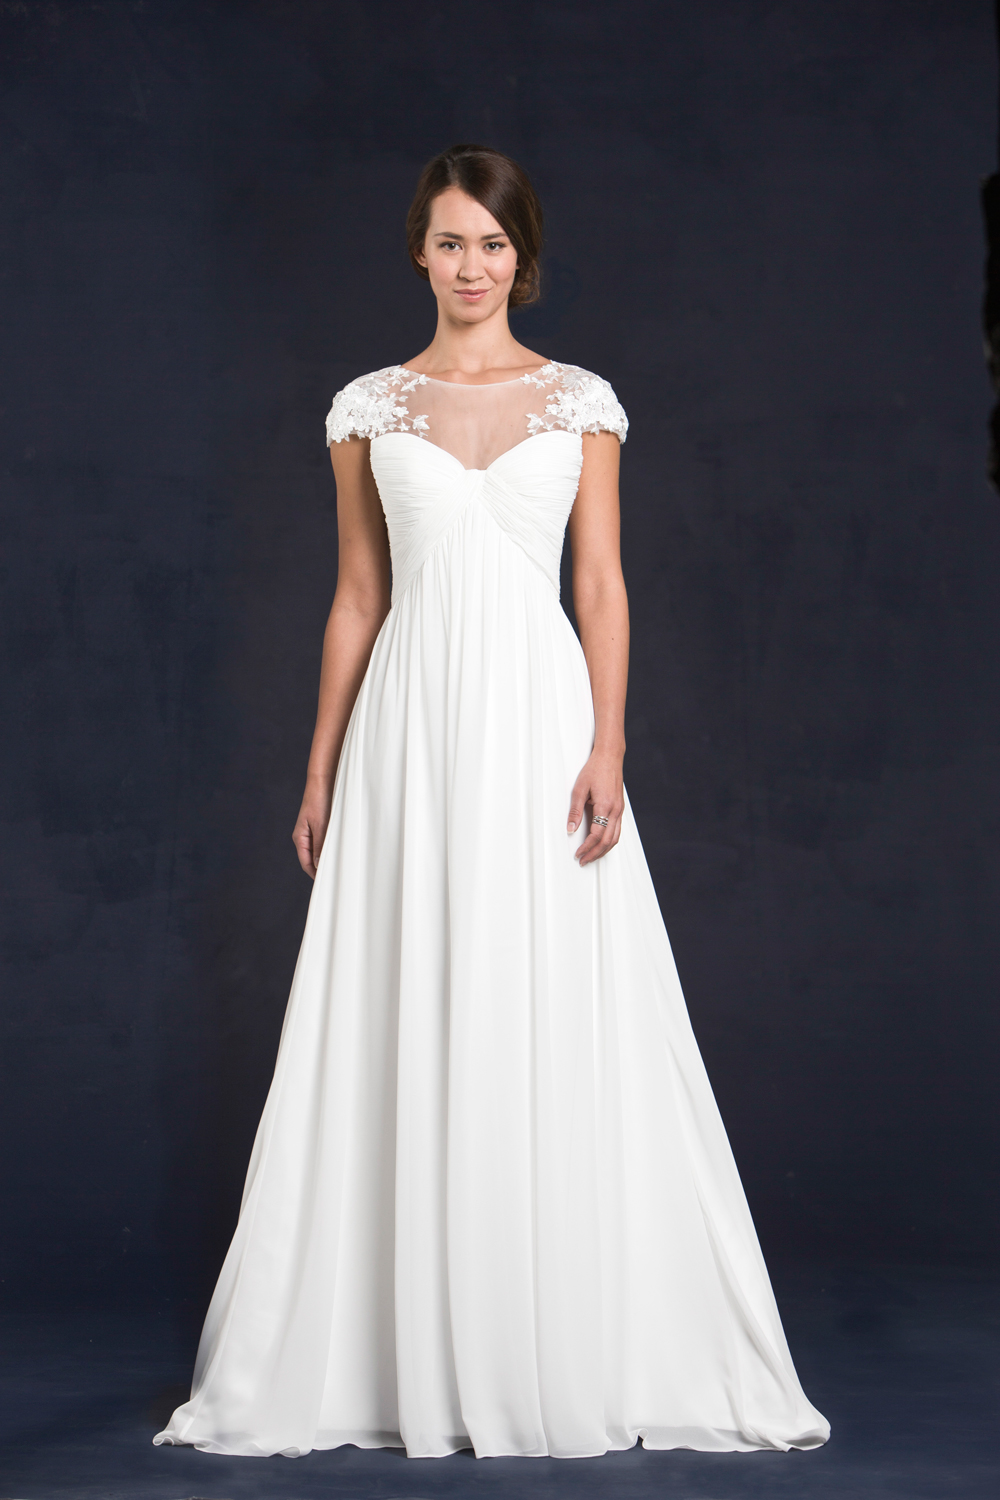 Wedding dresses designer discount bridesmaid dresses for Discount wedding dresses boston